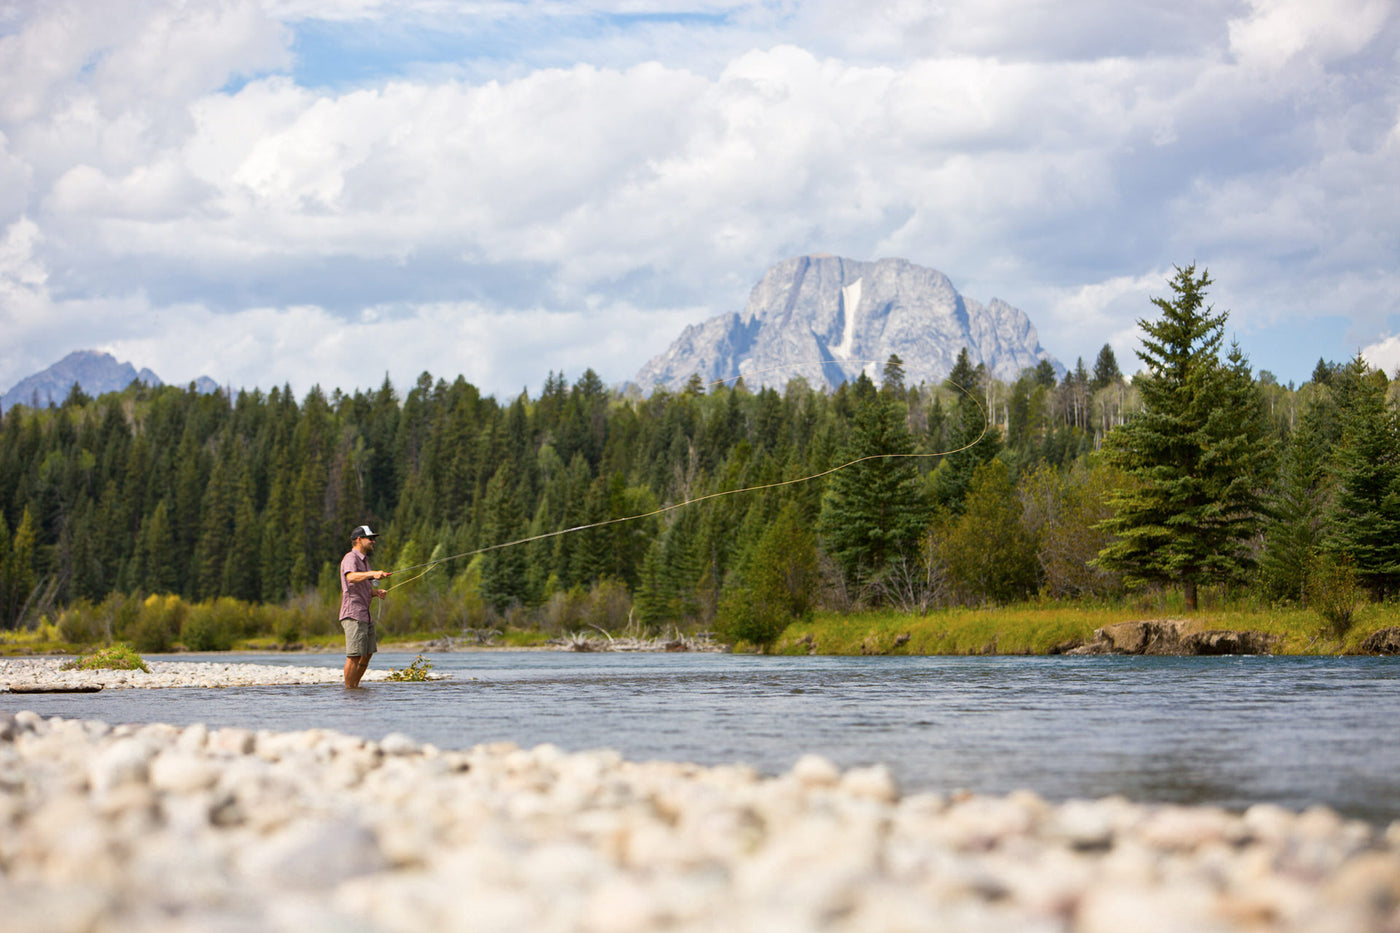 Man fly-fishing in front of Mount Moran in Grand Teton National Park. Jackson Hole, Wyoming. Photo: Tuck Fauntleroy